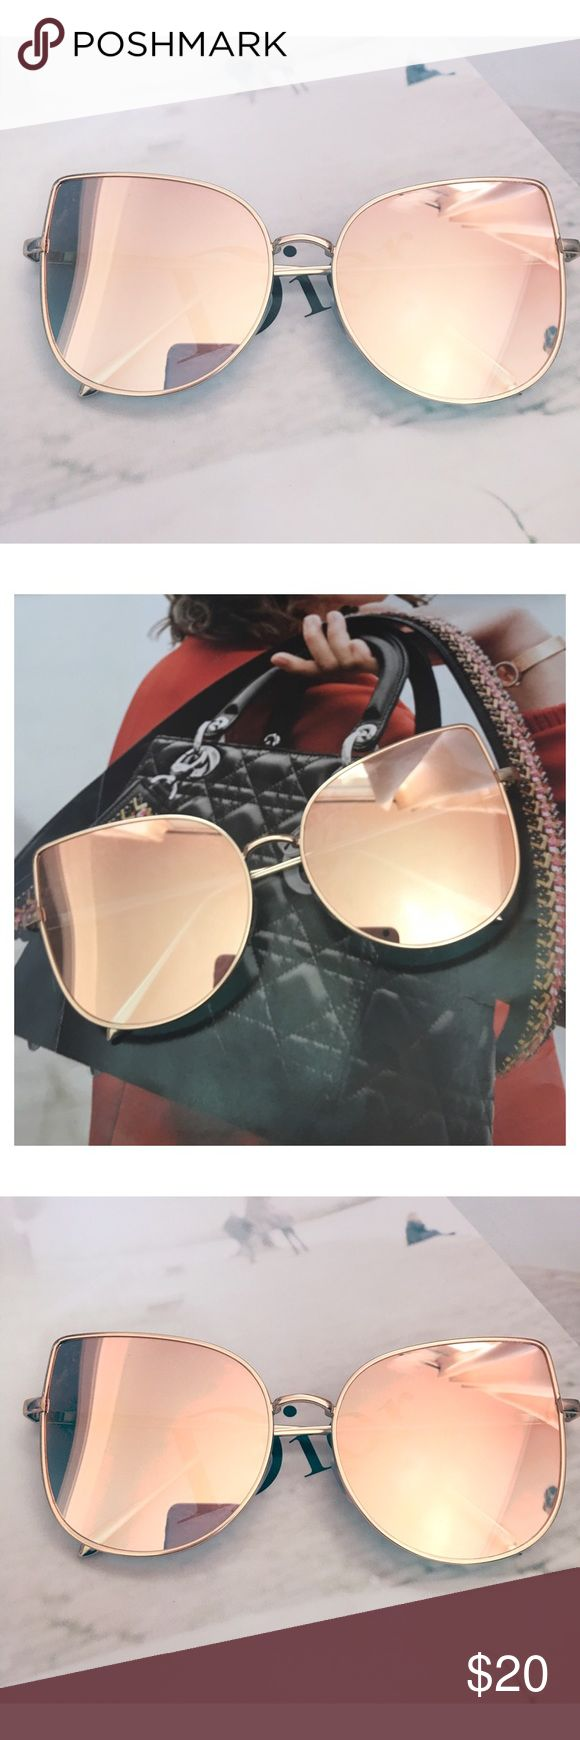 SOLD OUT- Rose Gold Mirrored Sunglasses Restocking soon! Cat Eye Aviator Sunglasses. This listing is for a pair of Cat Eye aviator sunshades. Rose Gold Mirrored Sunglasses. Retro. Sunglasses. Wire sunglasses. Trending sunglasses. UV protection. Top quality! Brand new! Bundle and save! Accessories Glasses